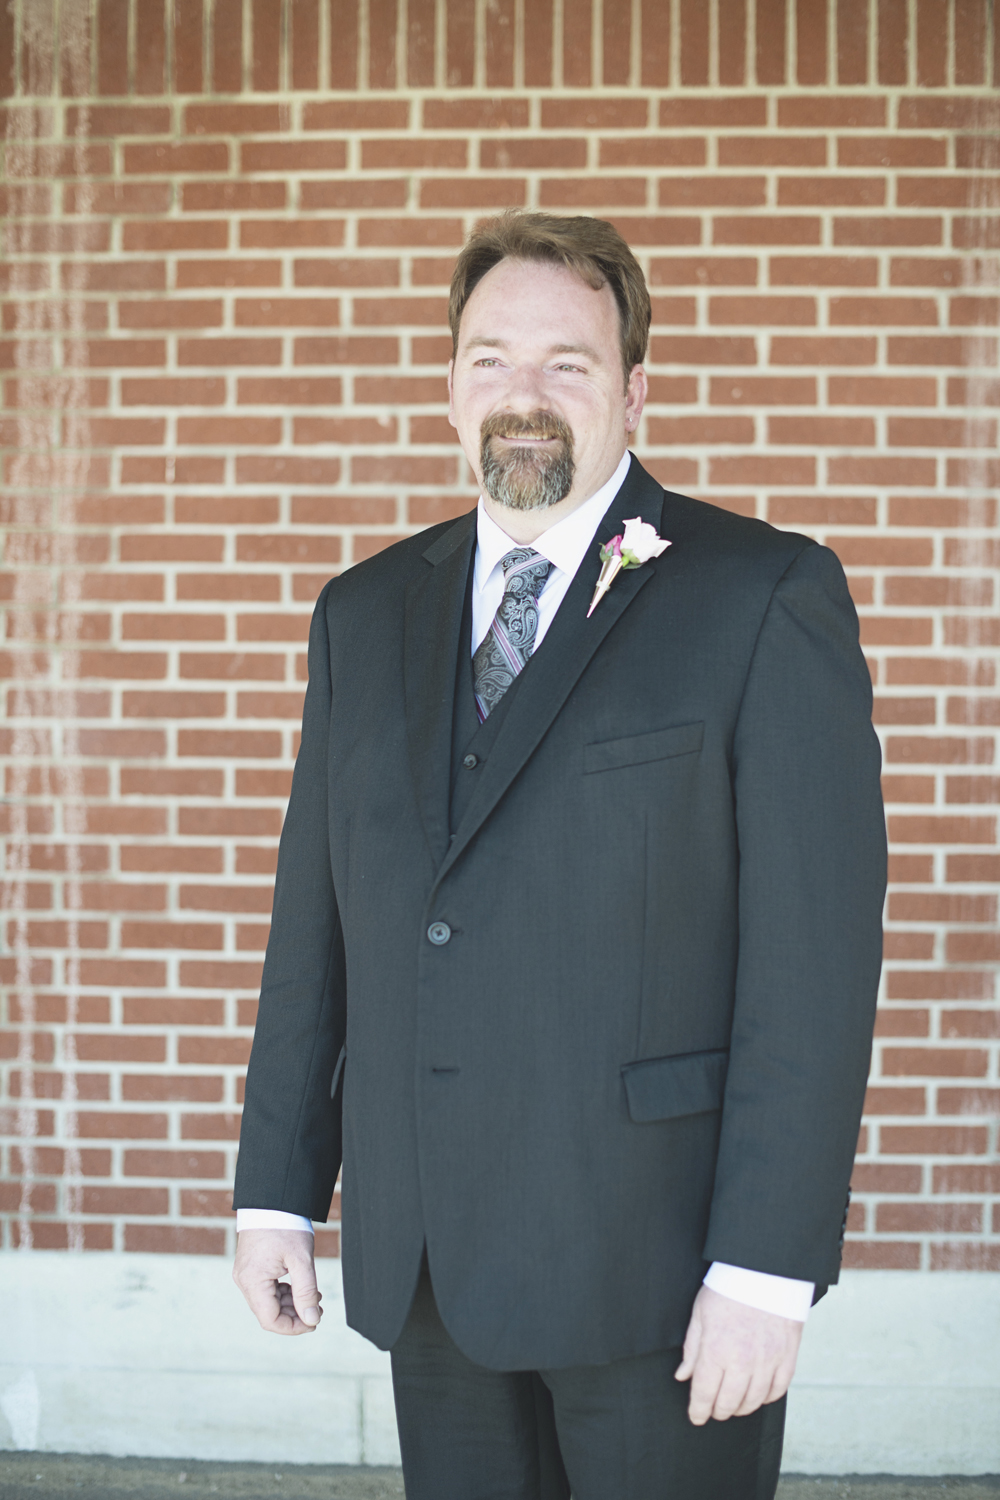 Groom portrait in front of brick wall